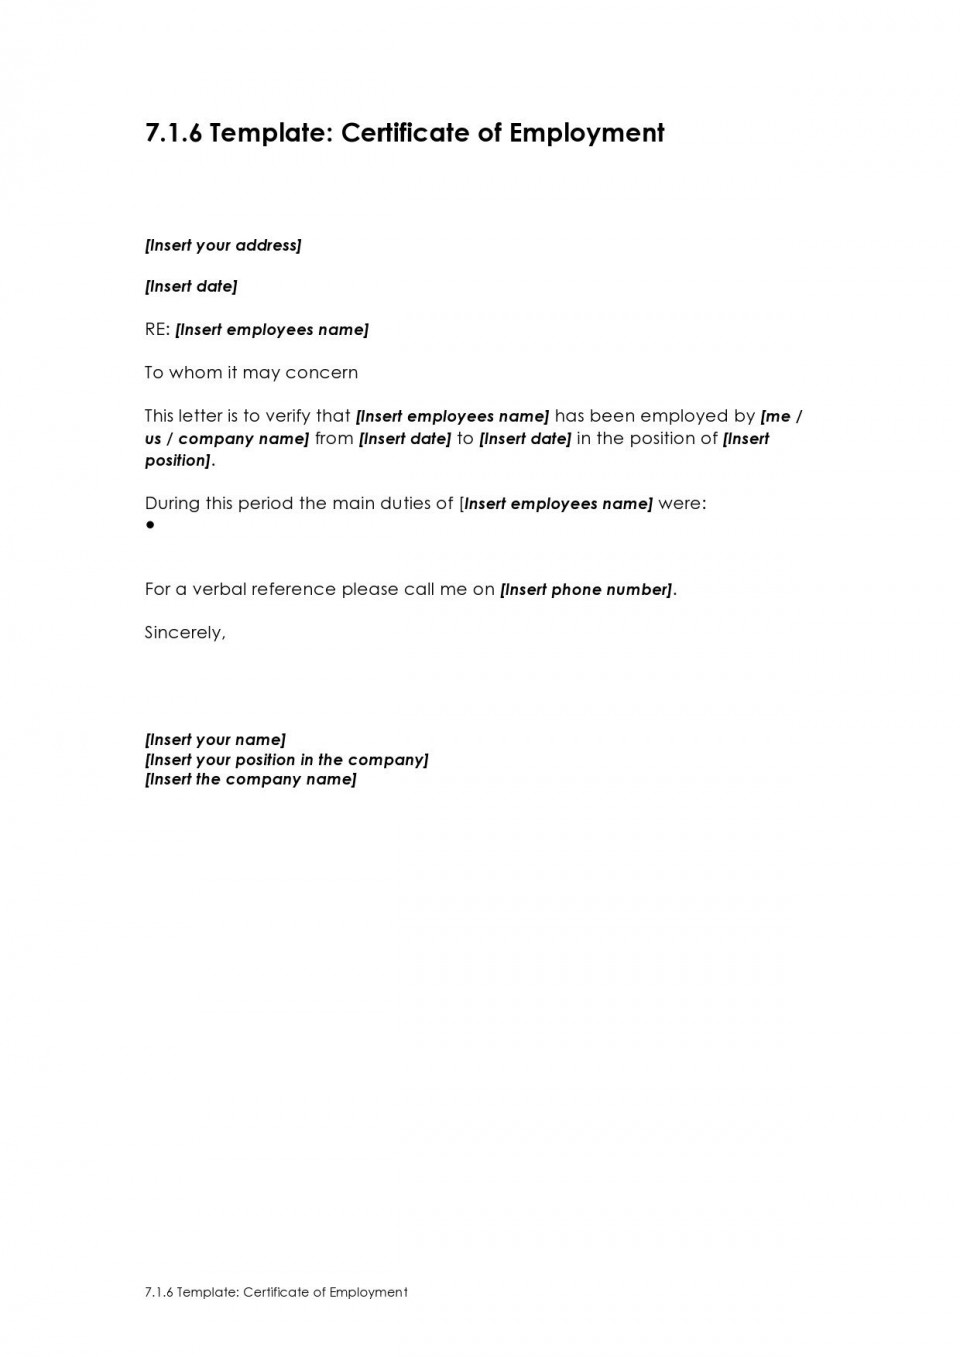 003 Incredible Proof Of Employment Letter Template Canada Idea  Confirmation960